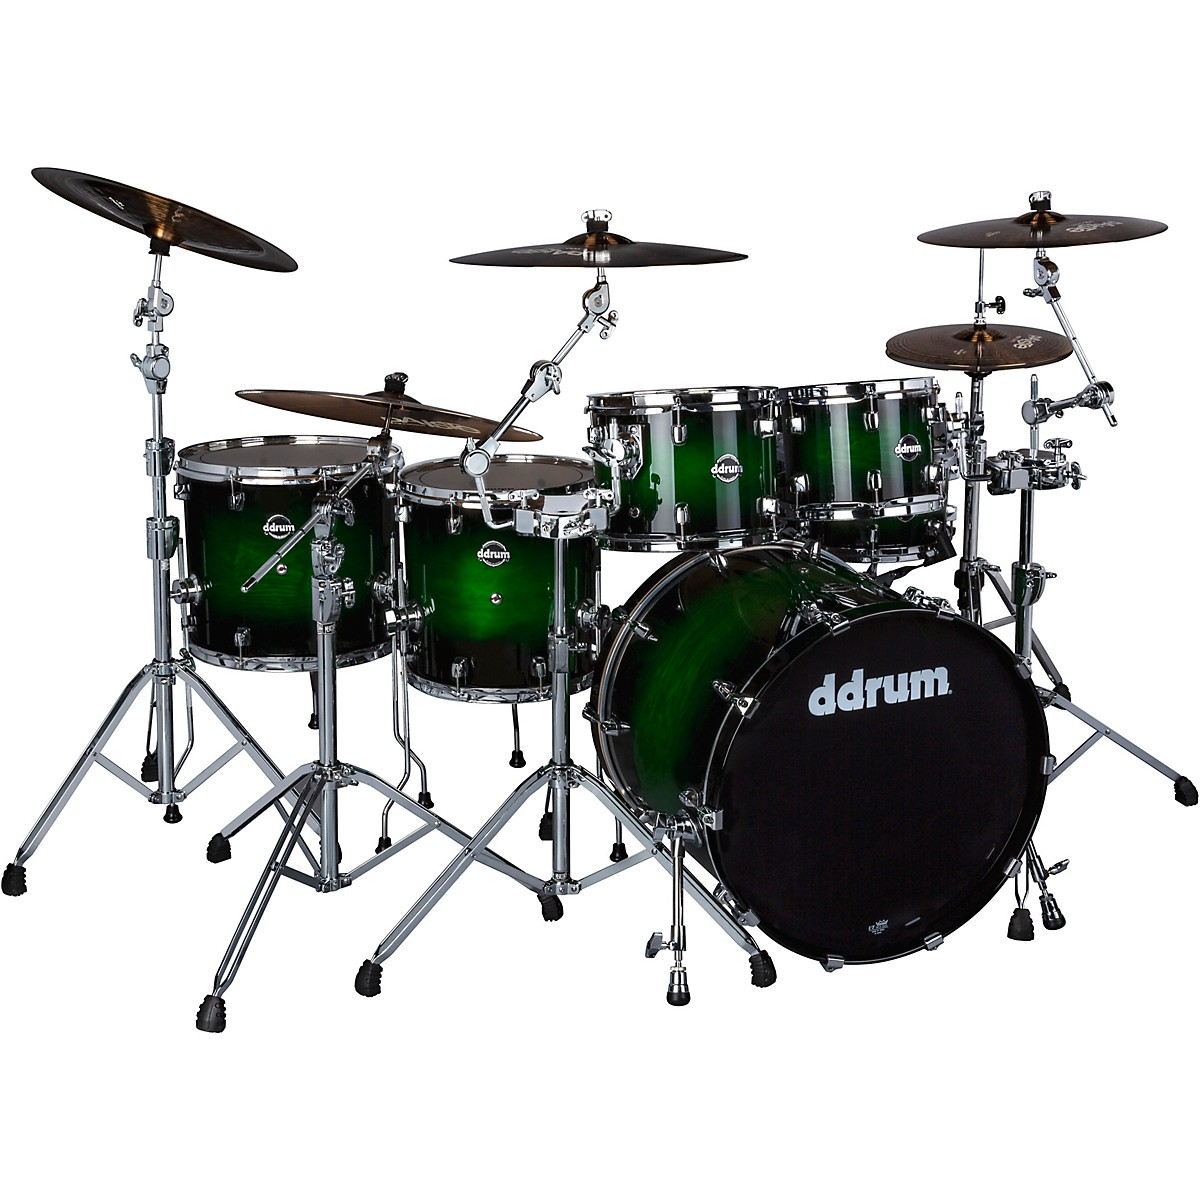 ddrum Dominion Birch 6-piece Shell Pack with Ash Veneer